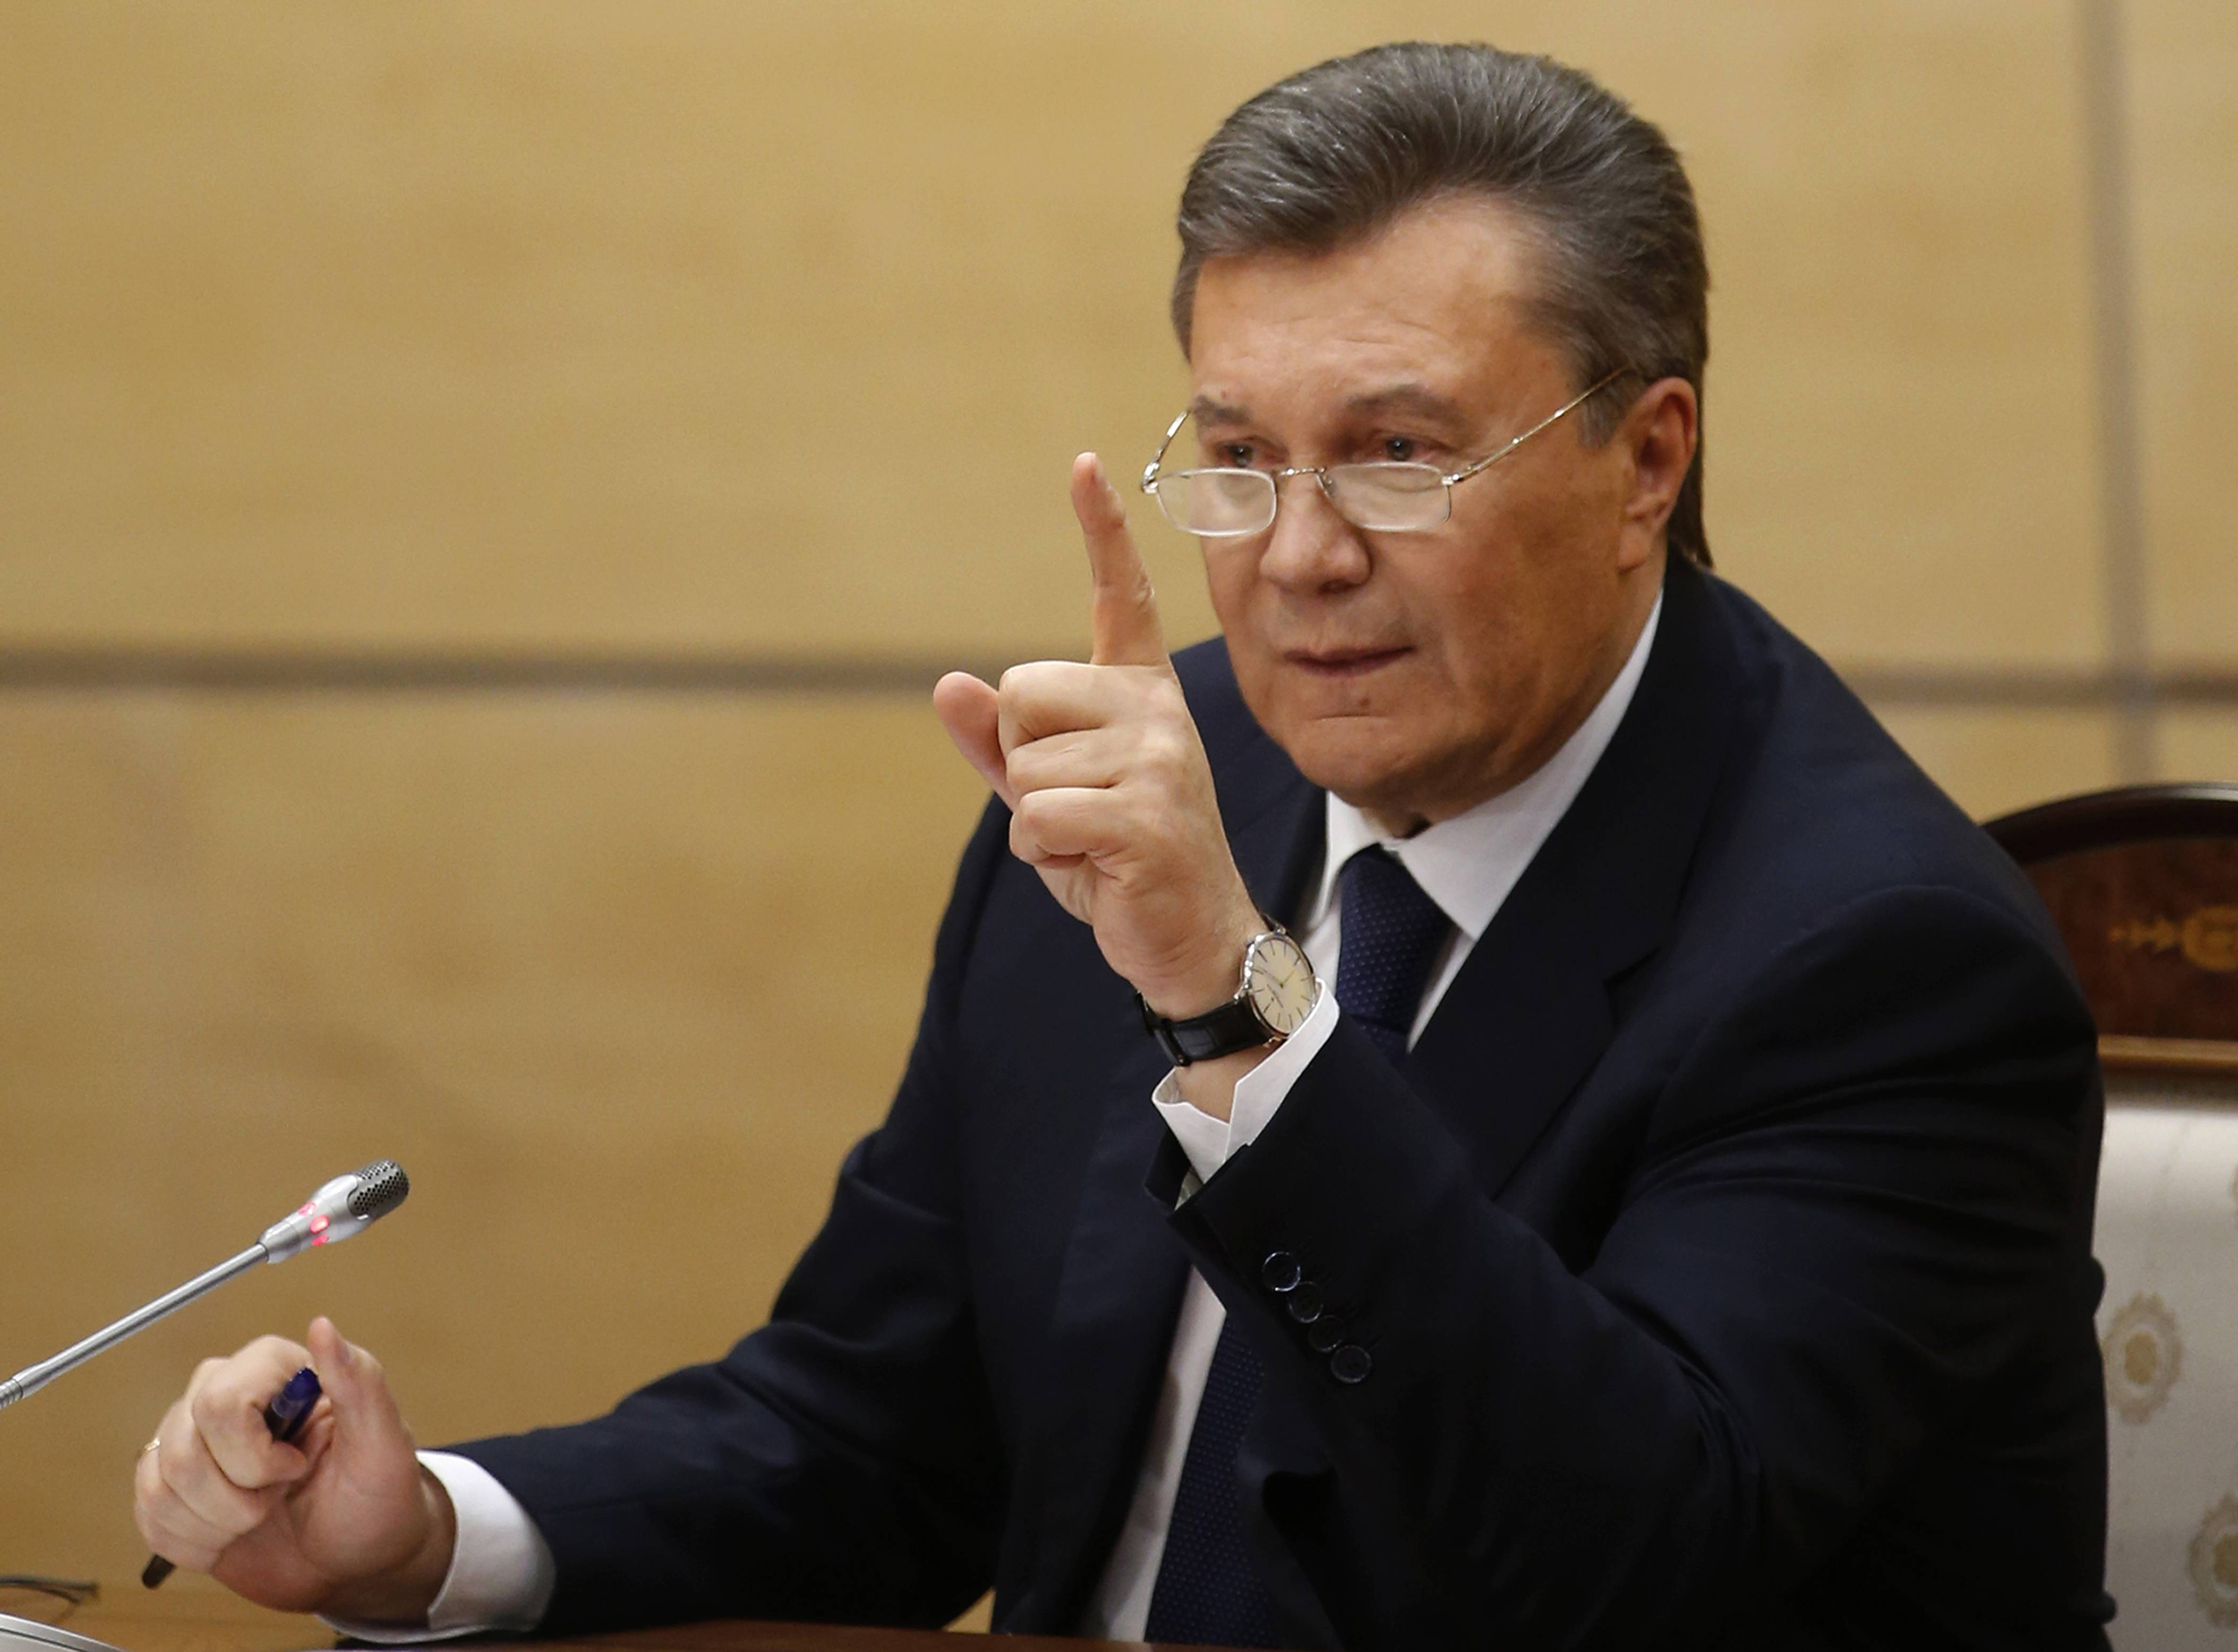 Yanukovych: I won't ask for military assistance